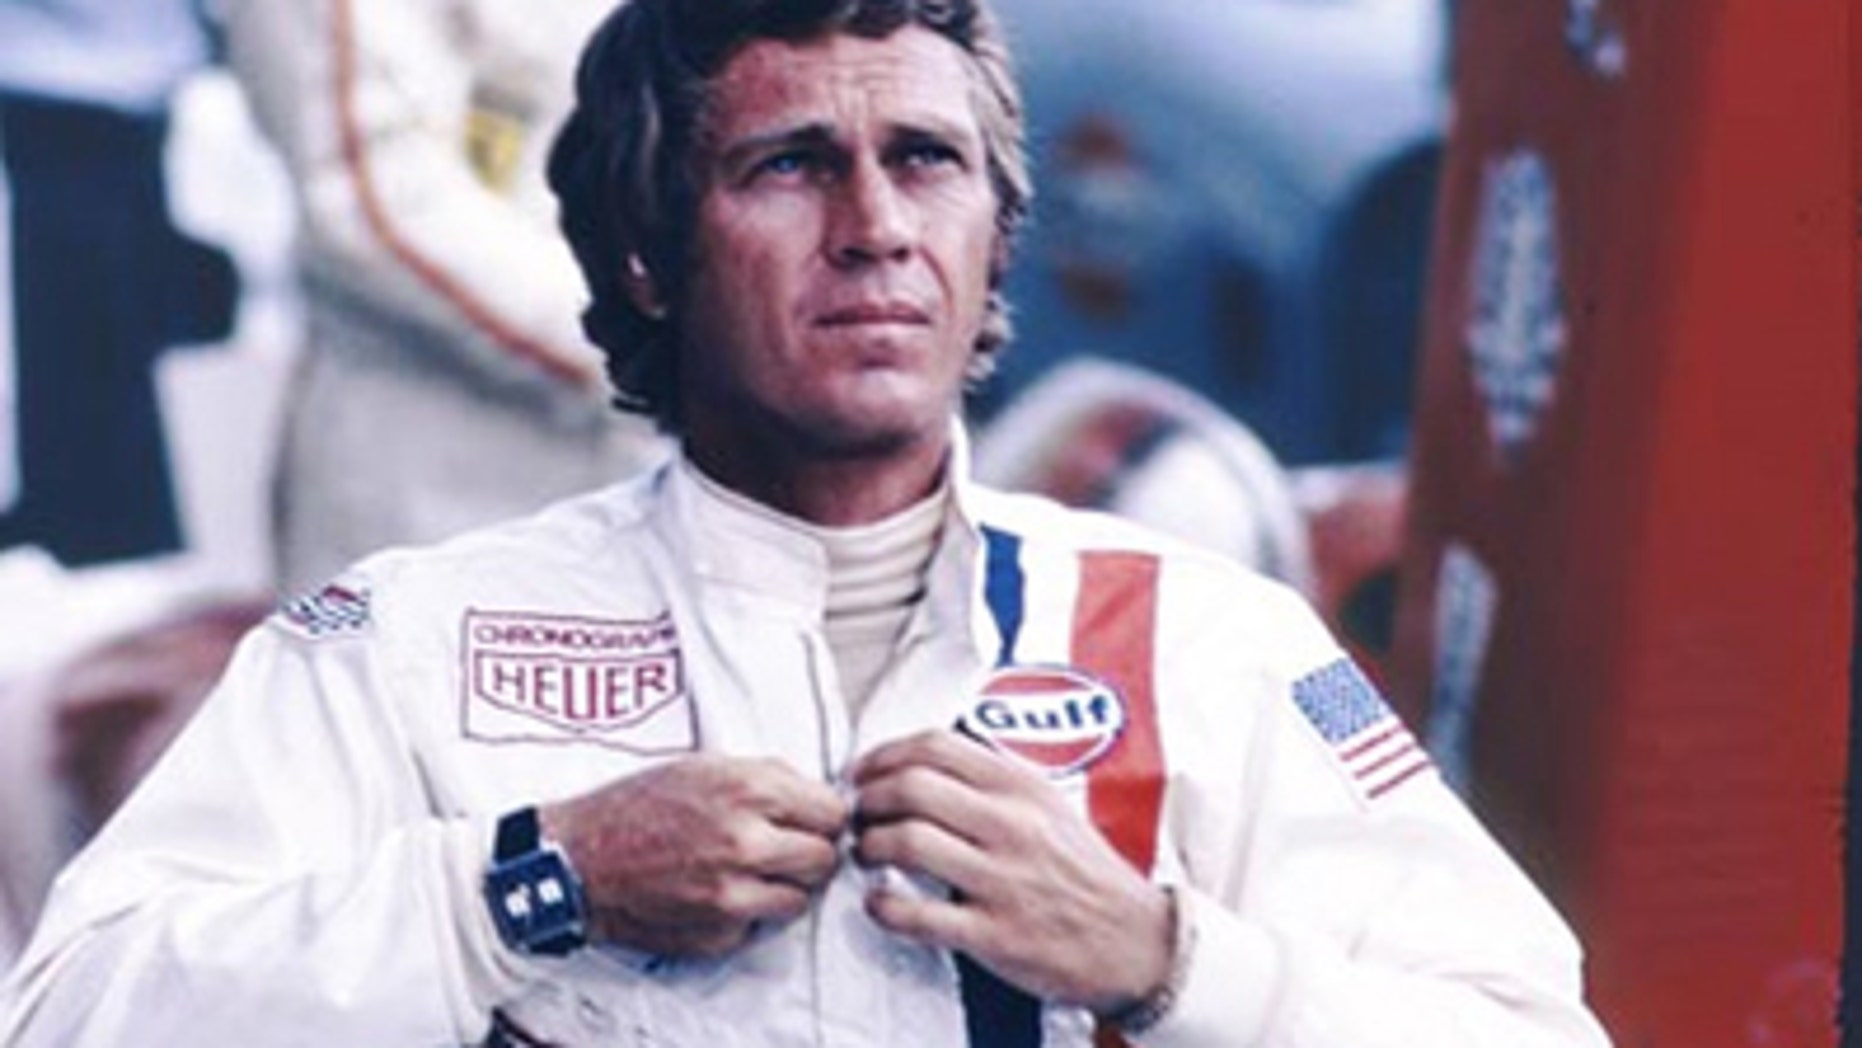 Image of Steve McQueen in Le Mans